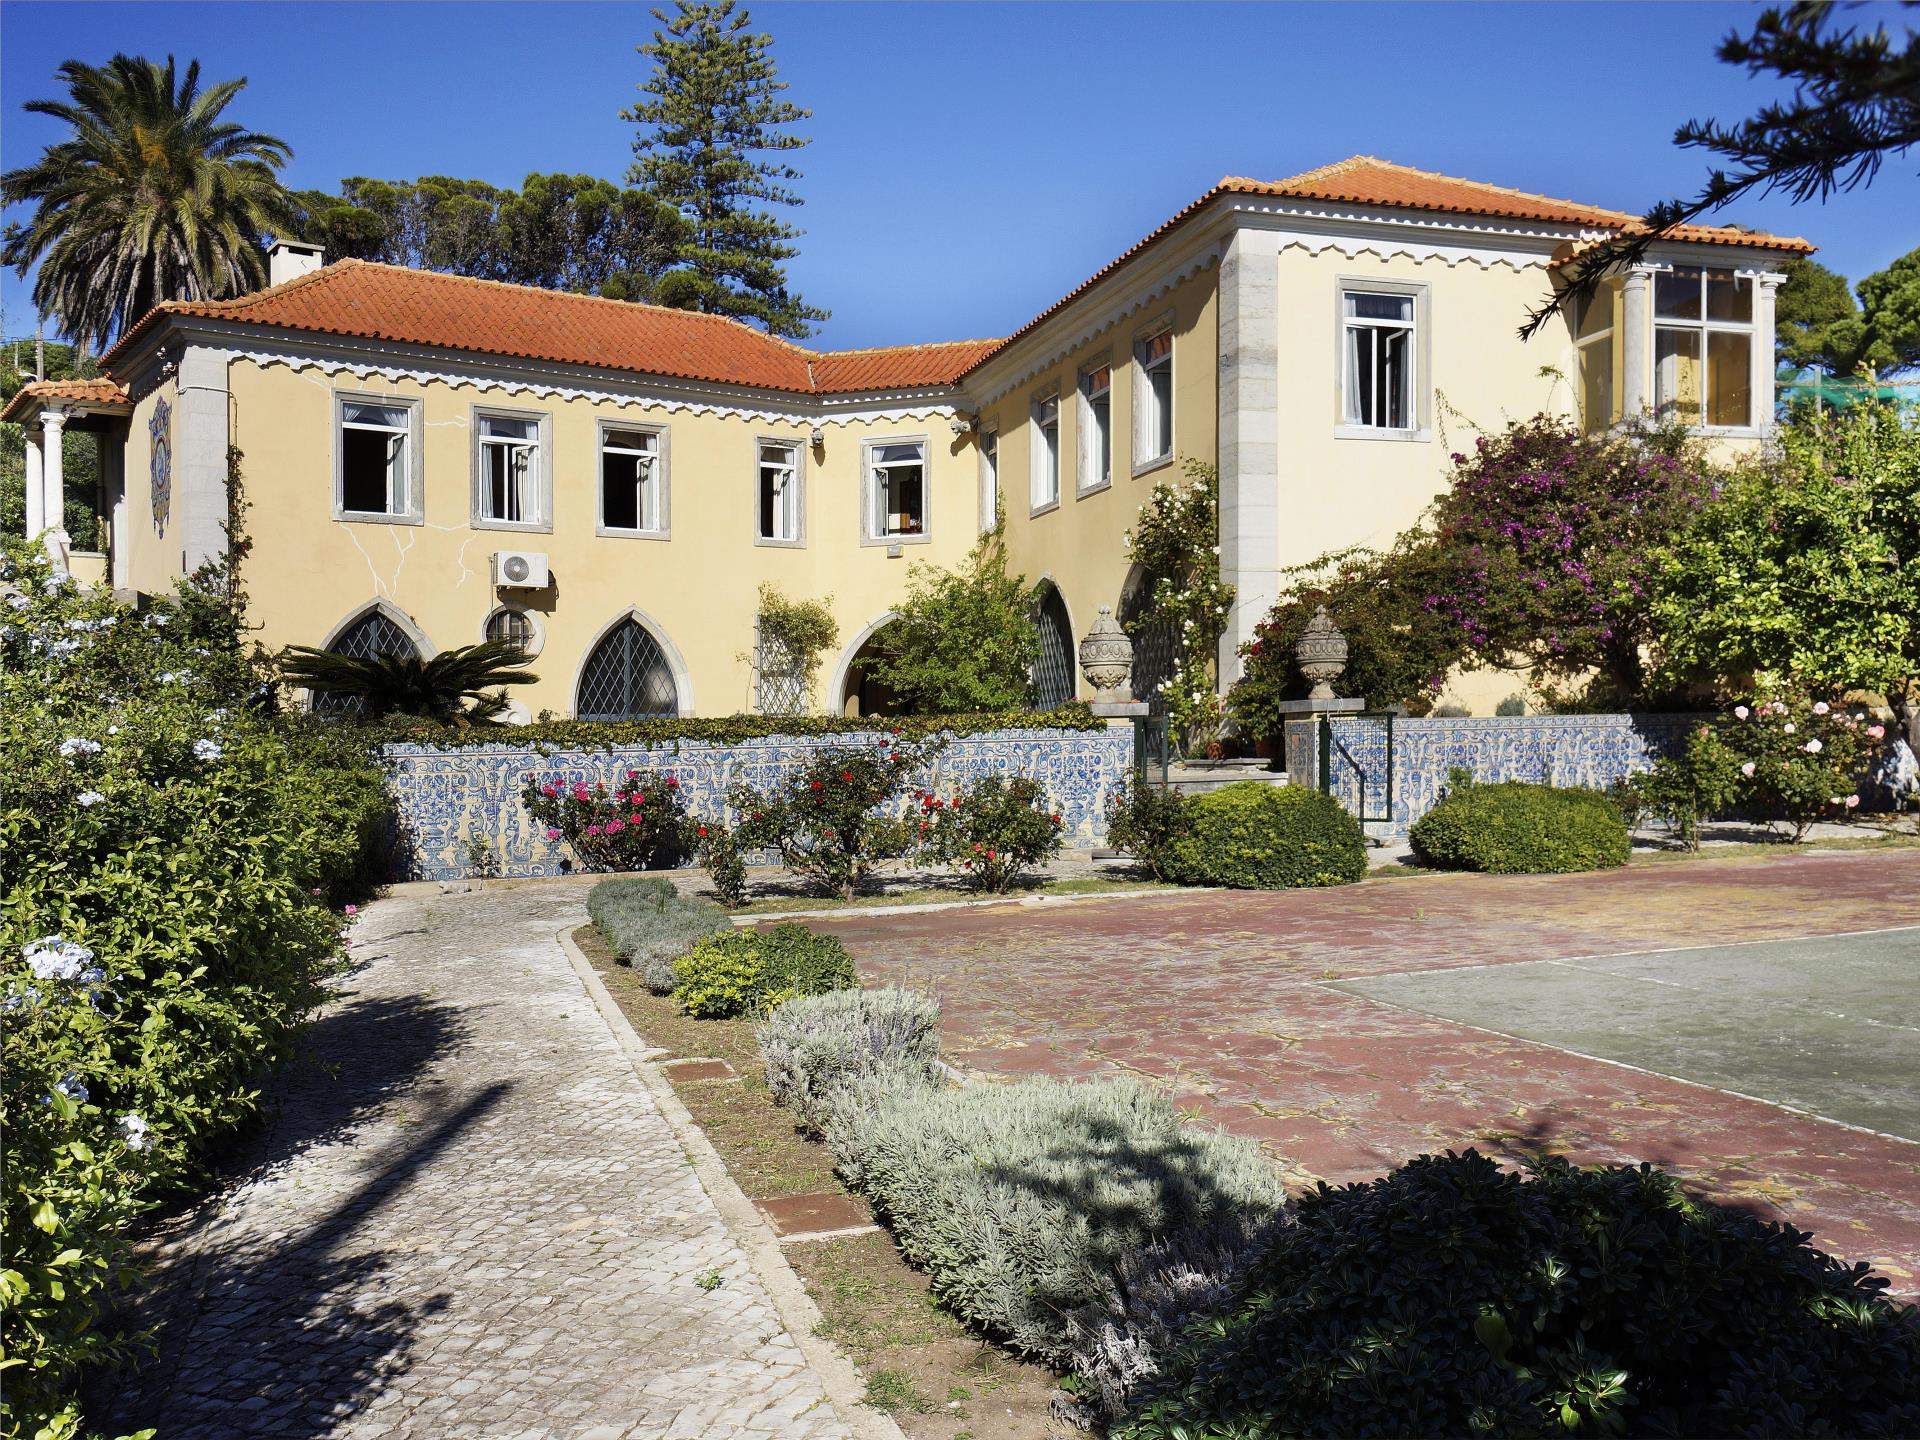 Villa per Vendita alle ore House, 4 bedrooms, for Sale Estoril, Cascais, Lisbona Portogallo